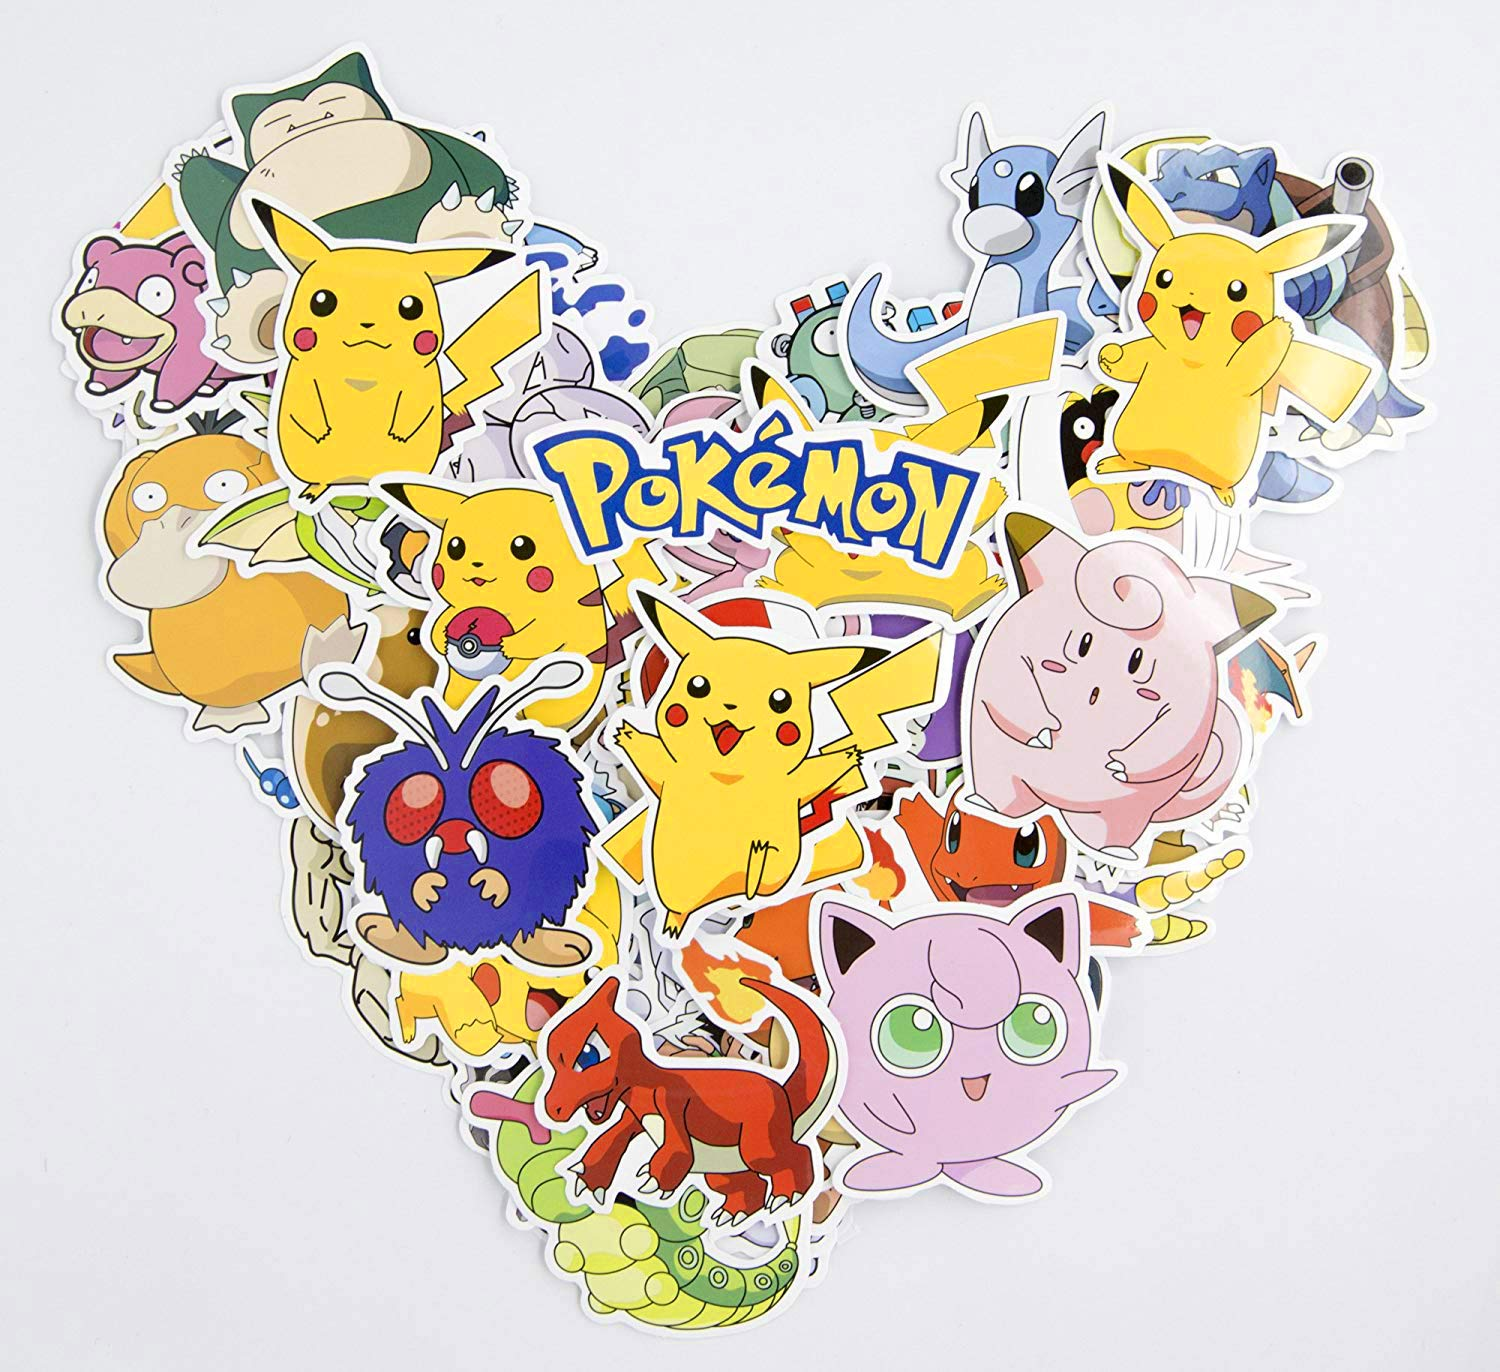 Sun Protection Waterproof Pokemon Pikachu Stickers 80 Pcs Great Gift For Pokemon Lover From Jack/_Go; HighQuality Vinyl Sticker